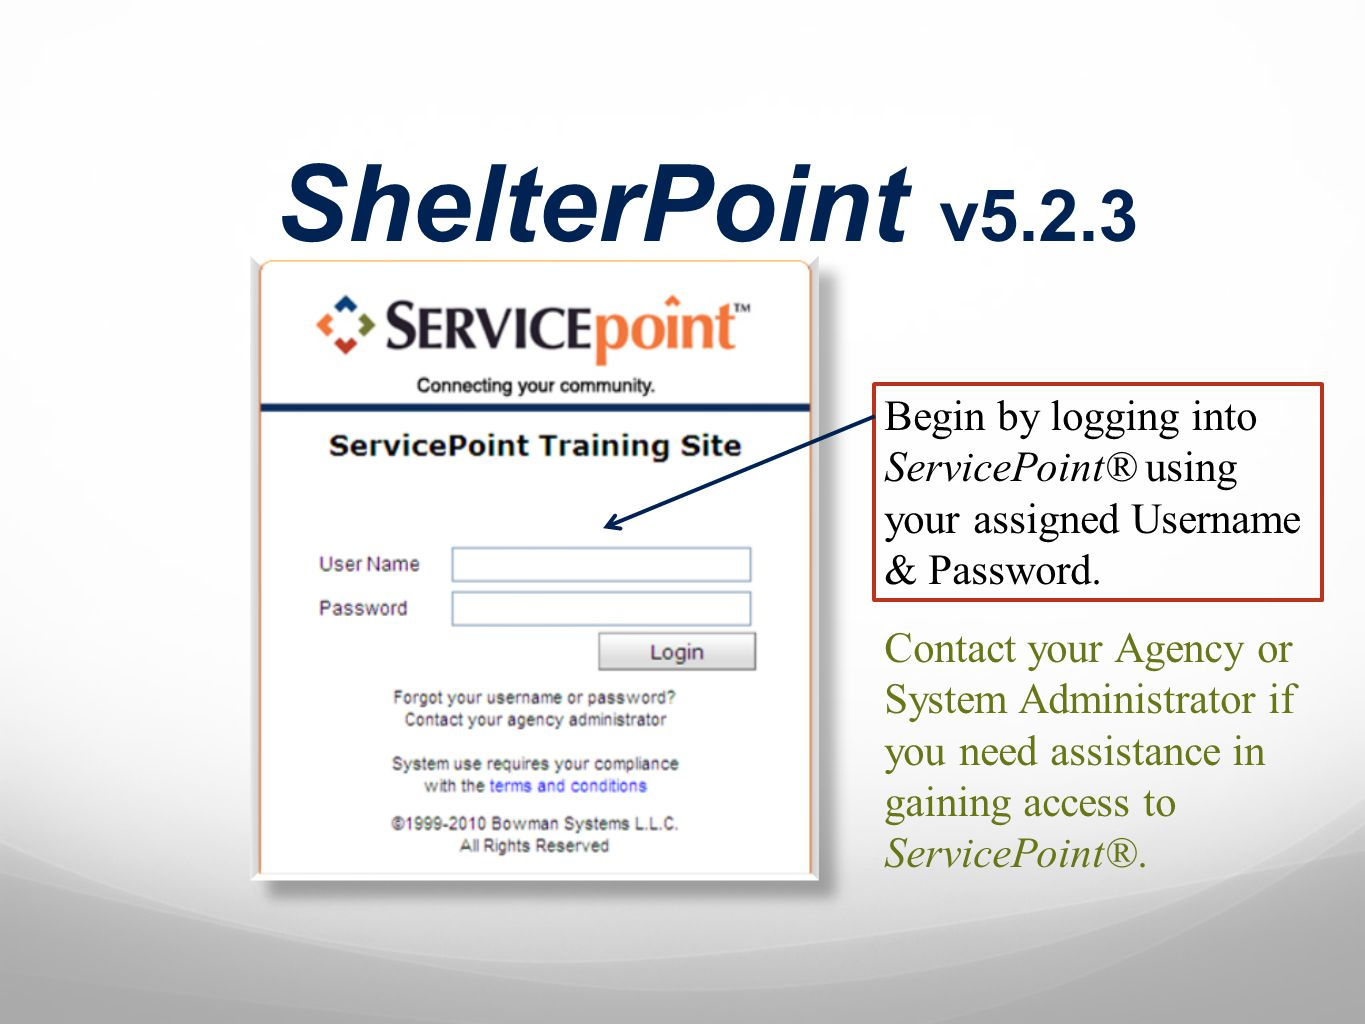 ShelterPoint v5.2.3 Begin by logging into ServicePoint® using your assigned Username & Password.